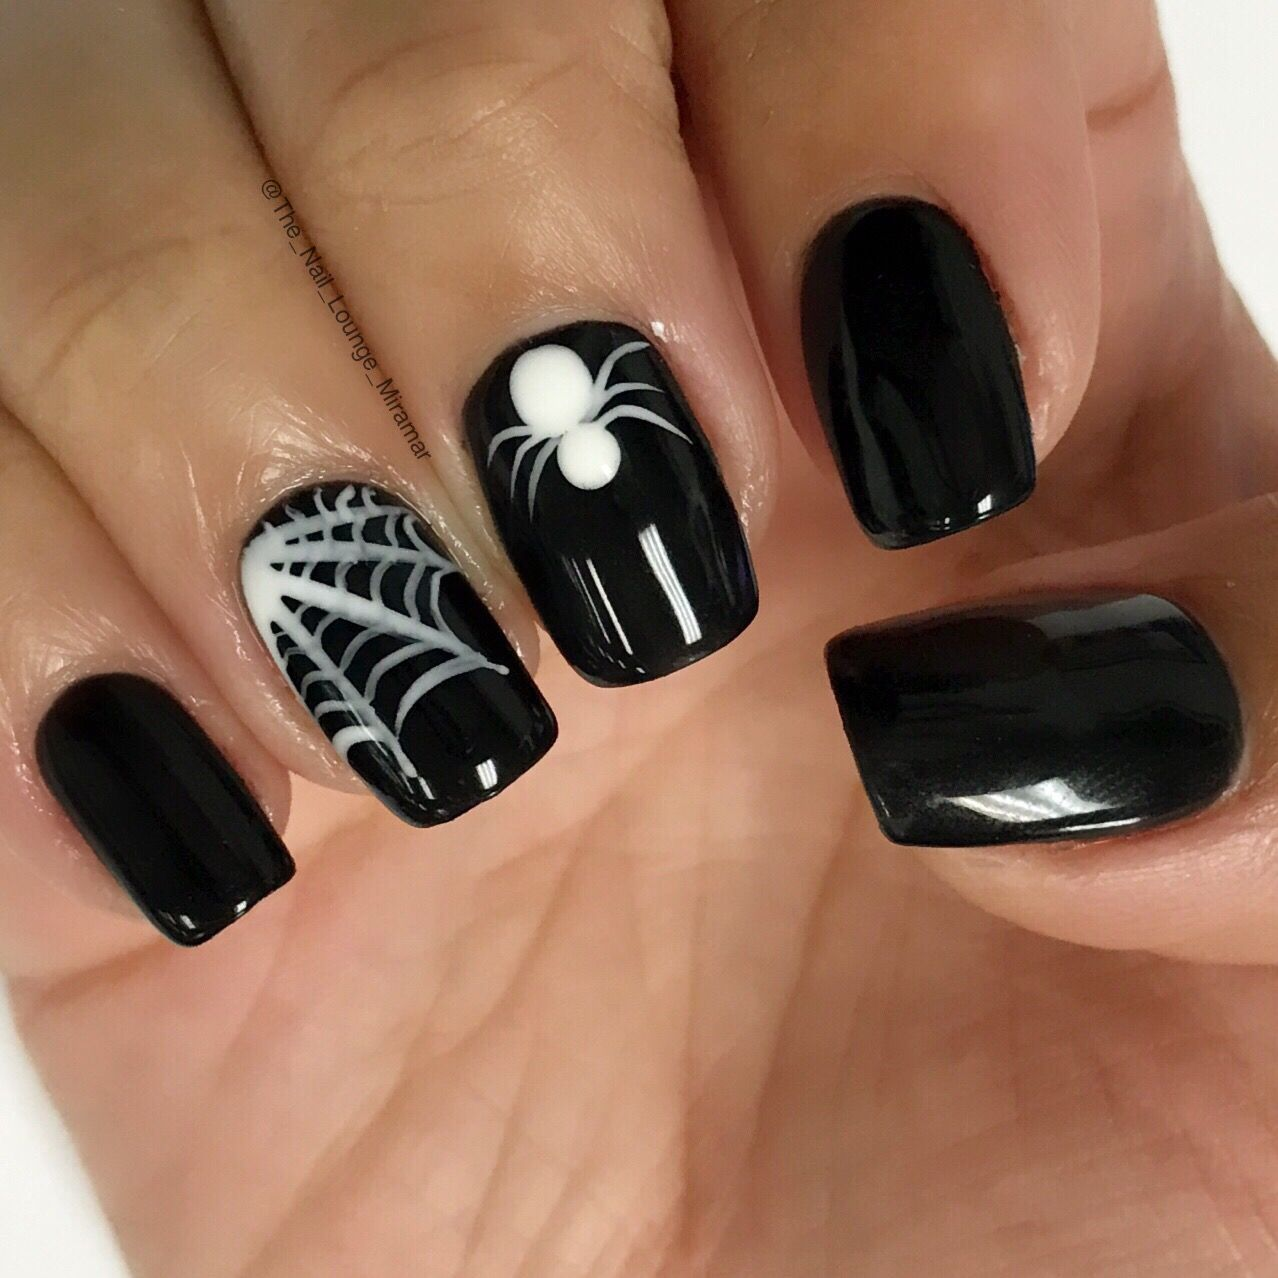 Spiderweb Halloween nail art design | Nail Art | Pinterest ...